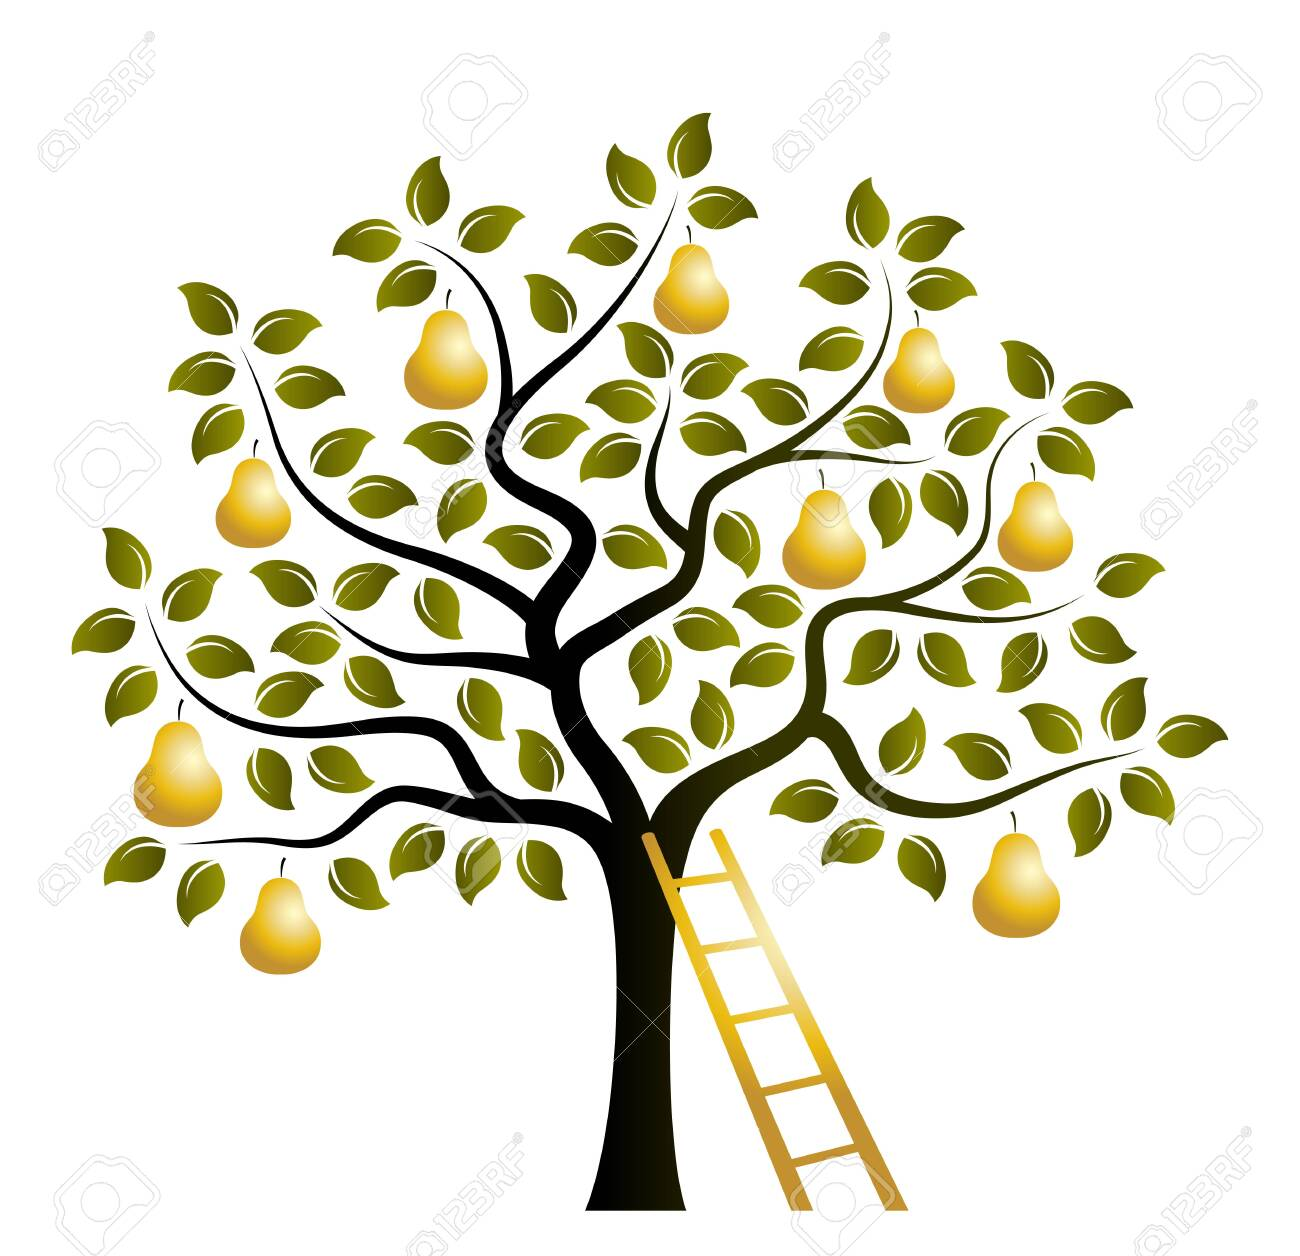 vector pear tree with golden pears and ladder isolated on white background - 122662038